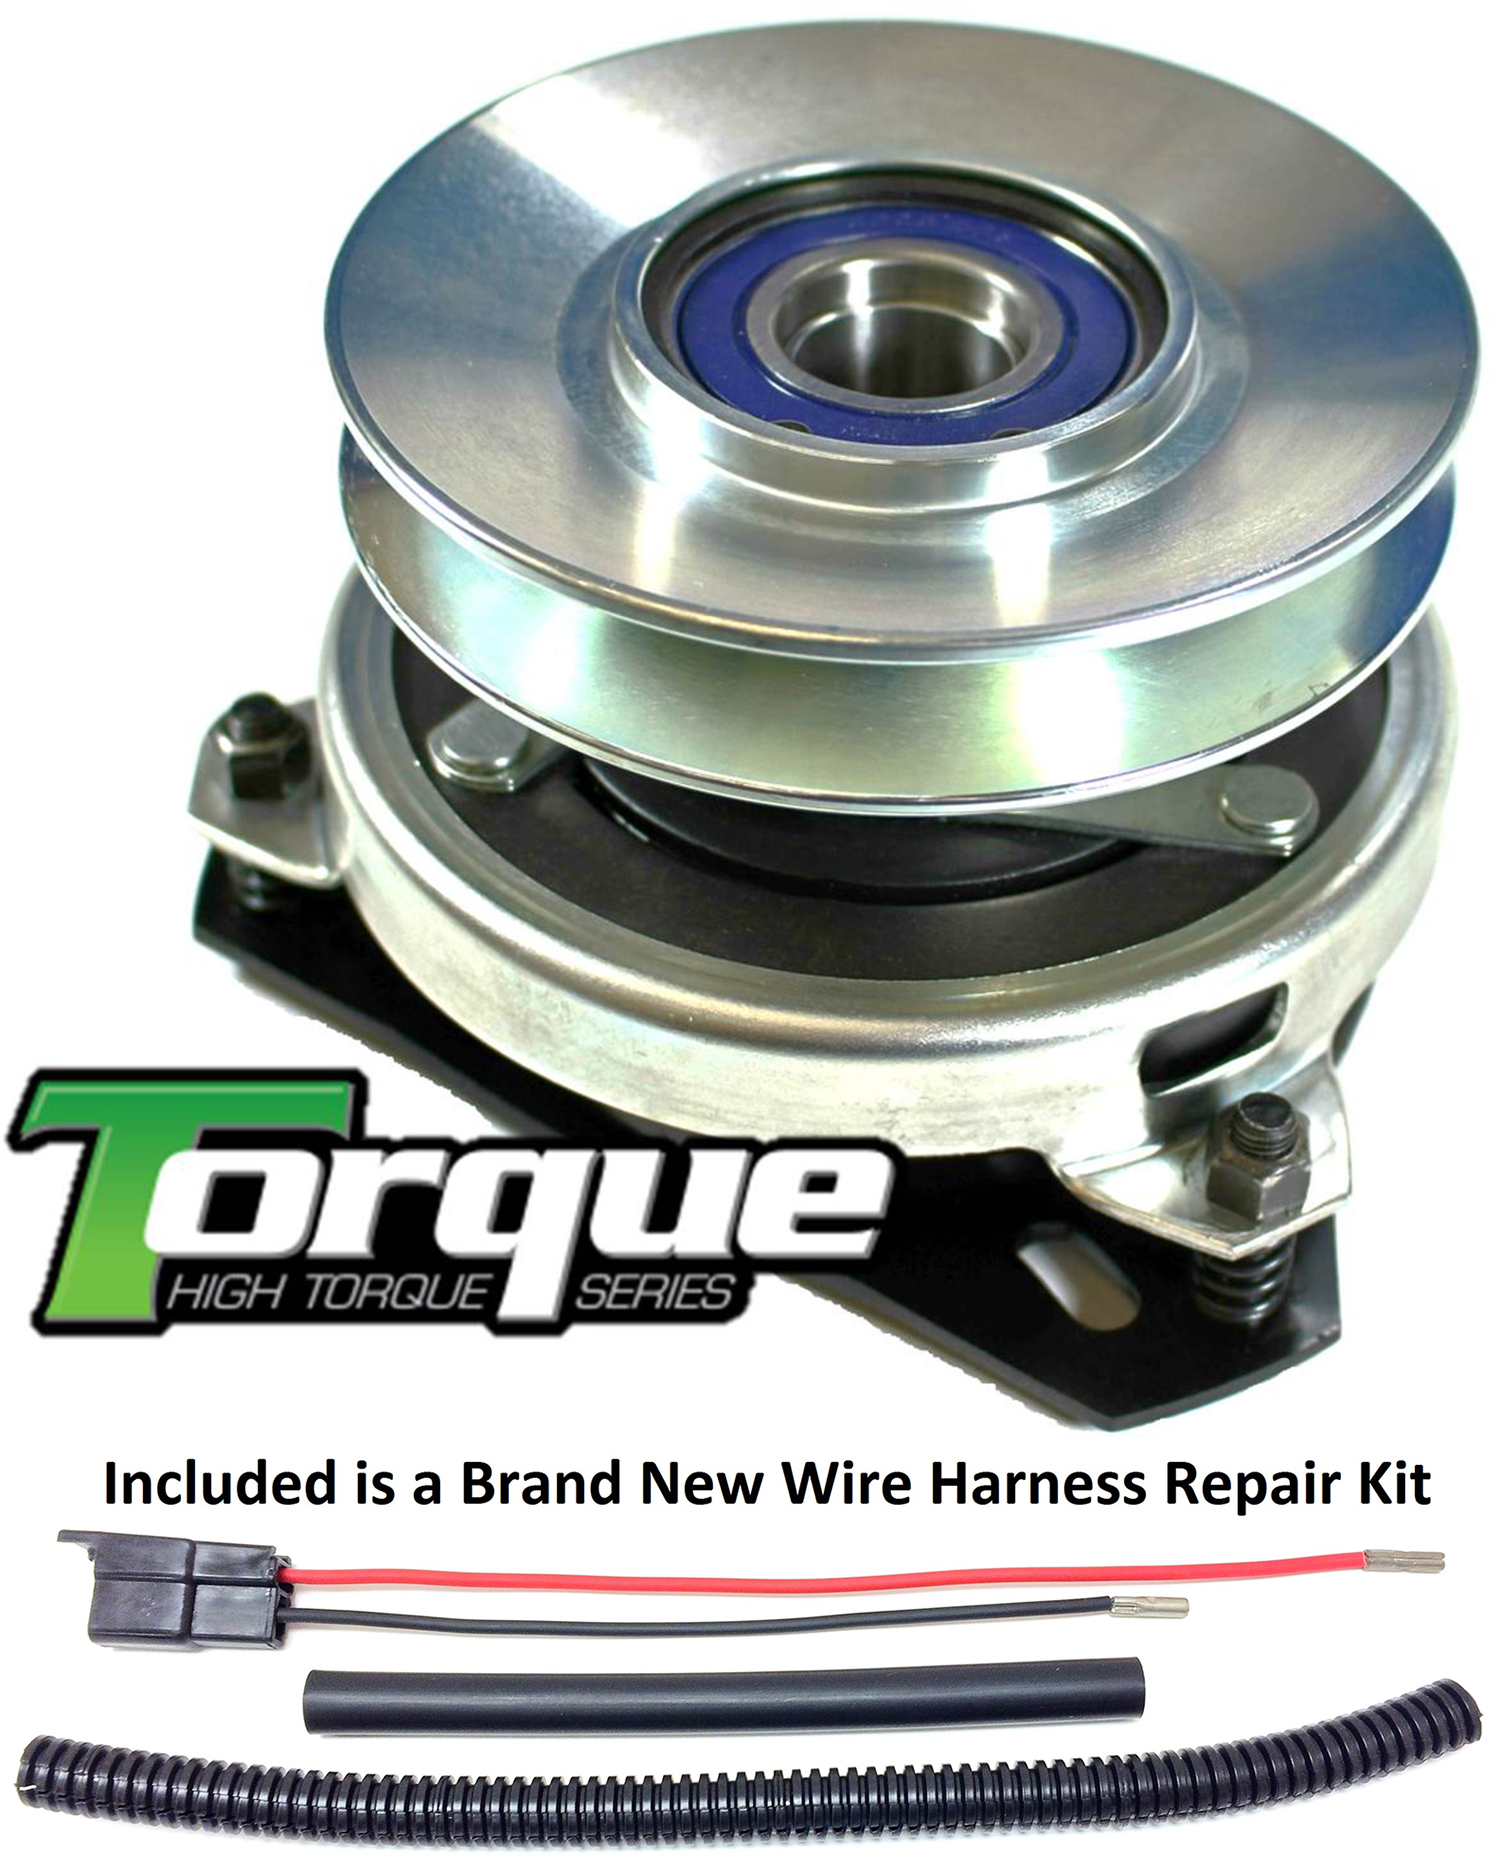 hight resolution of bundle 2 items pto electric blade clutch wire harness repair kit replaces husqvarna 917170056 pto clutch bearing upgrade w wire repair kit